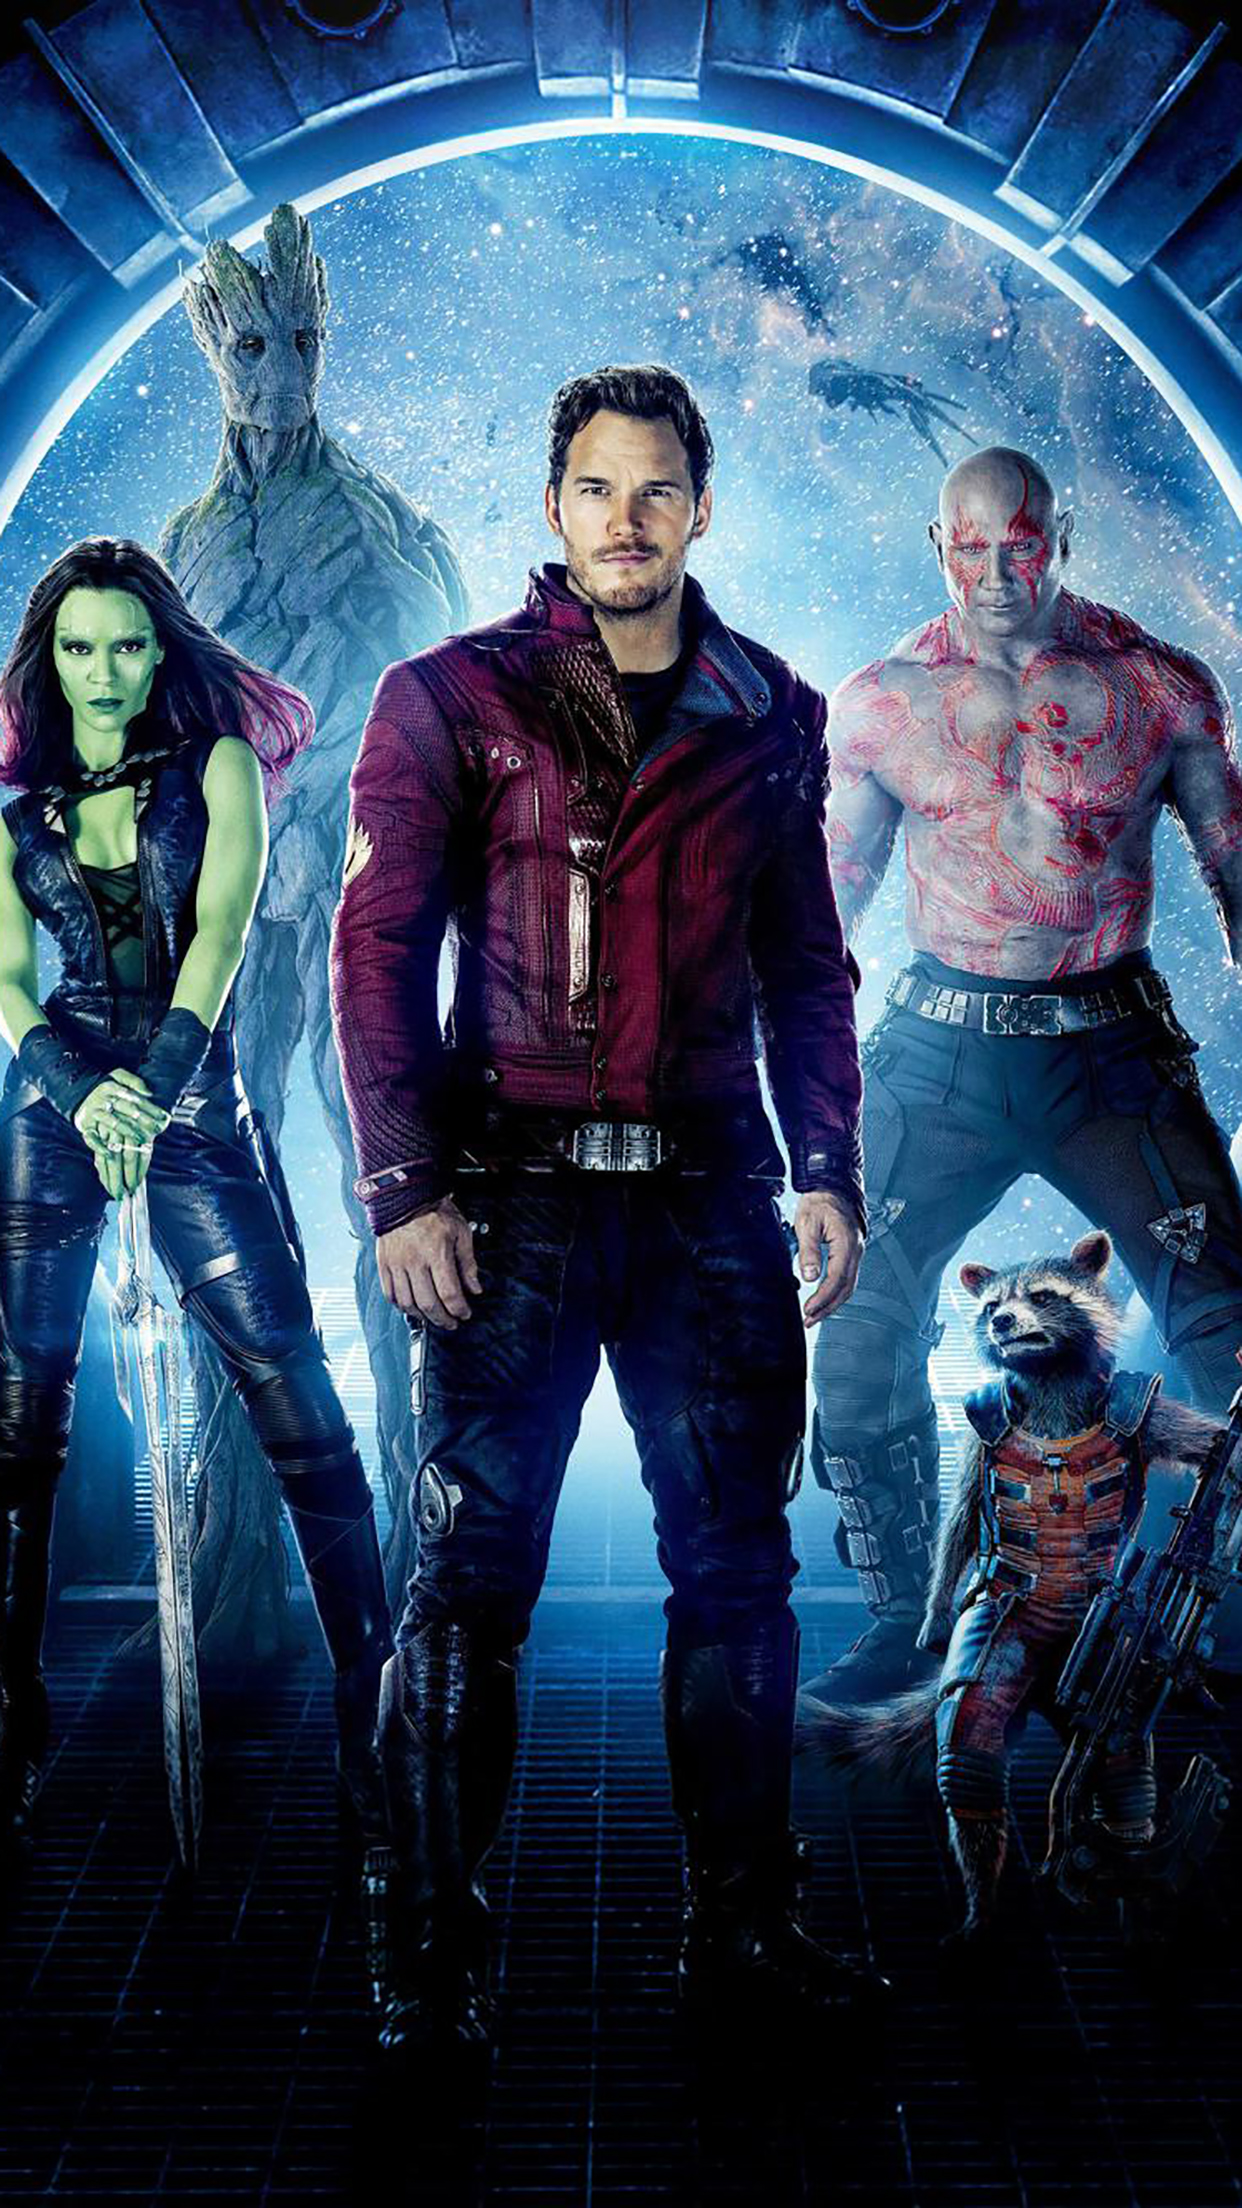 Guardians Of The Galaxy Poster 1 3Wallpapers iPhone Parallax Guardians Of The Galaxy : Poster 1